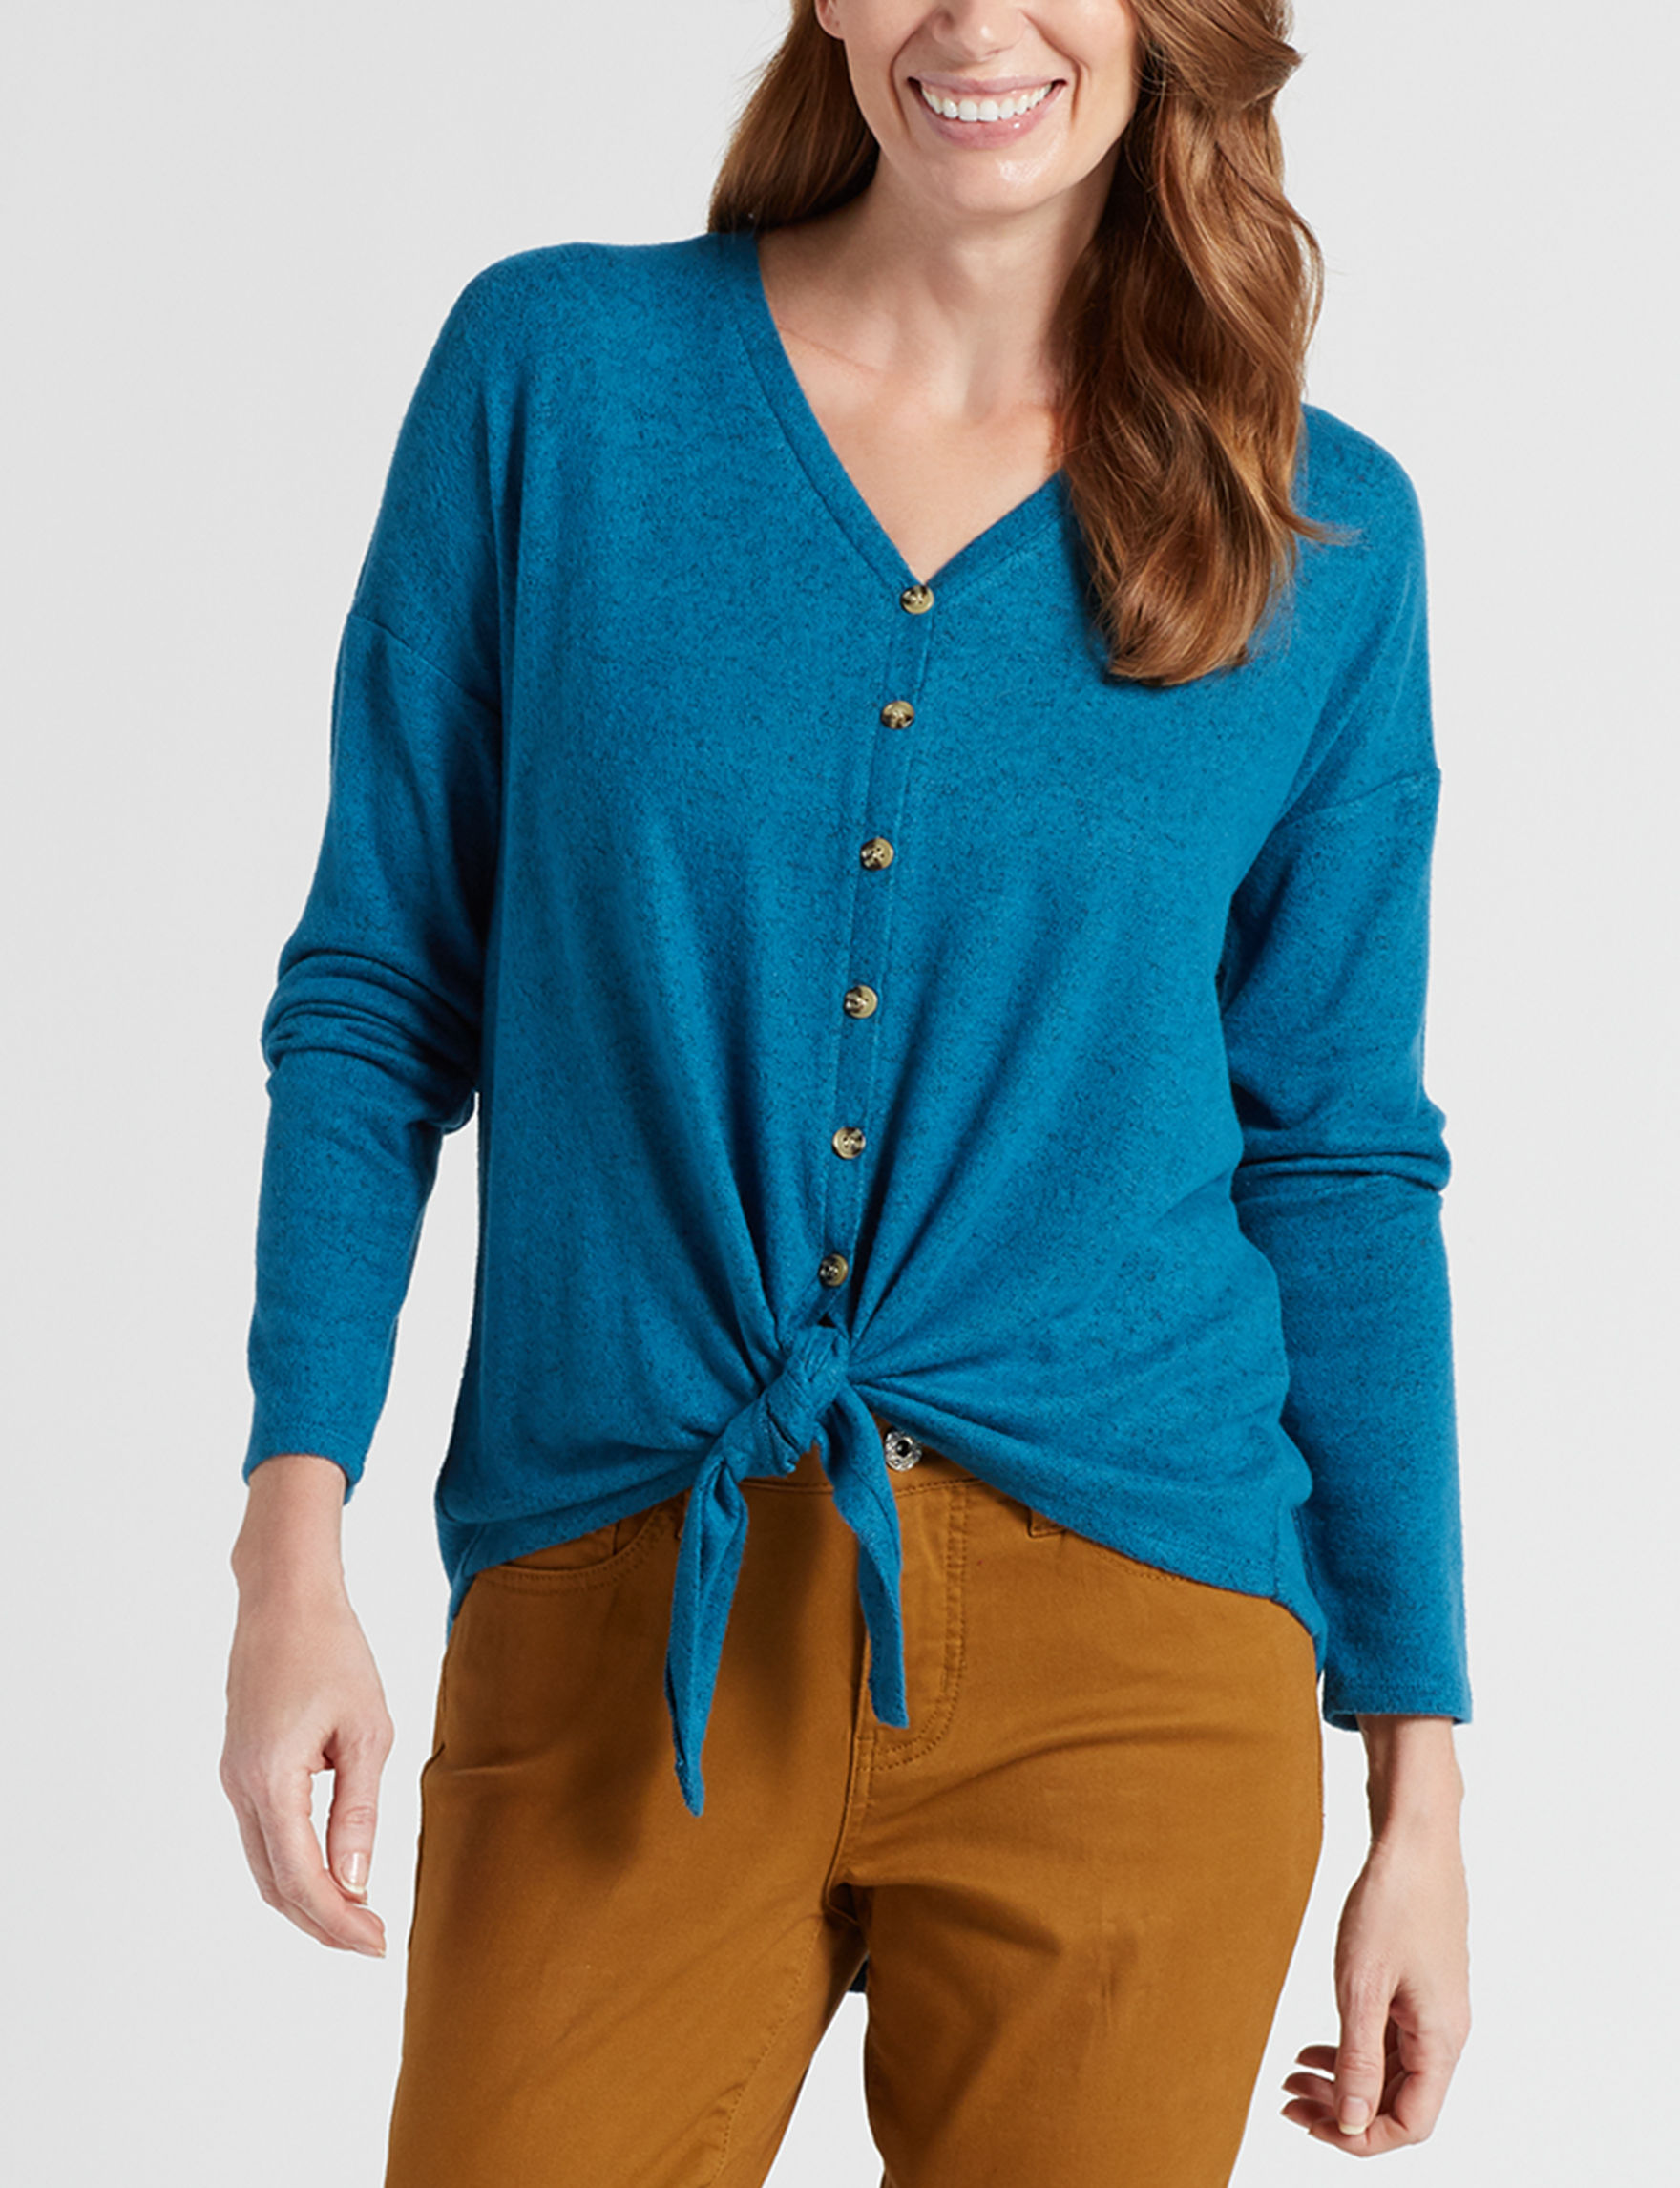 Signature Studio Seaport Shirts & Blouses